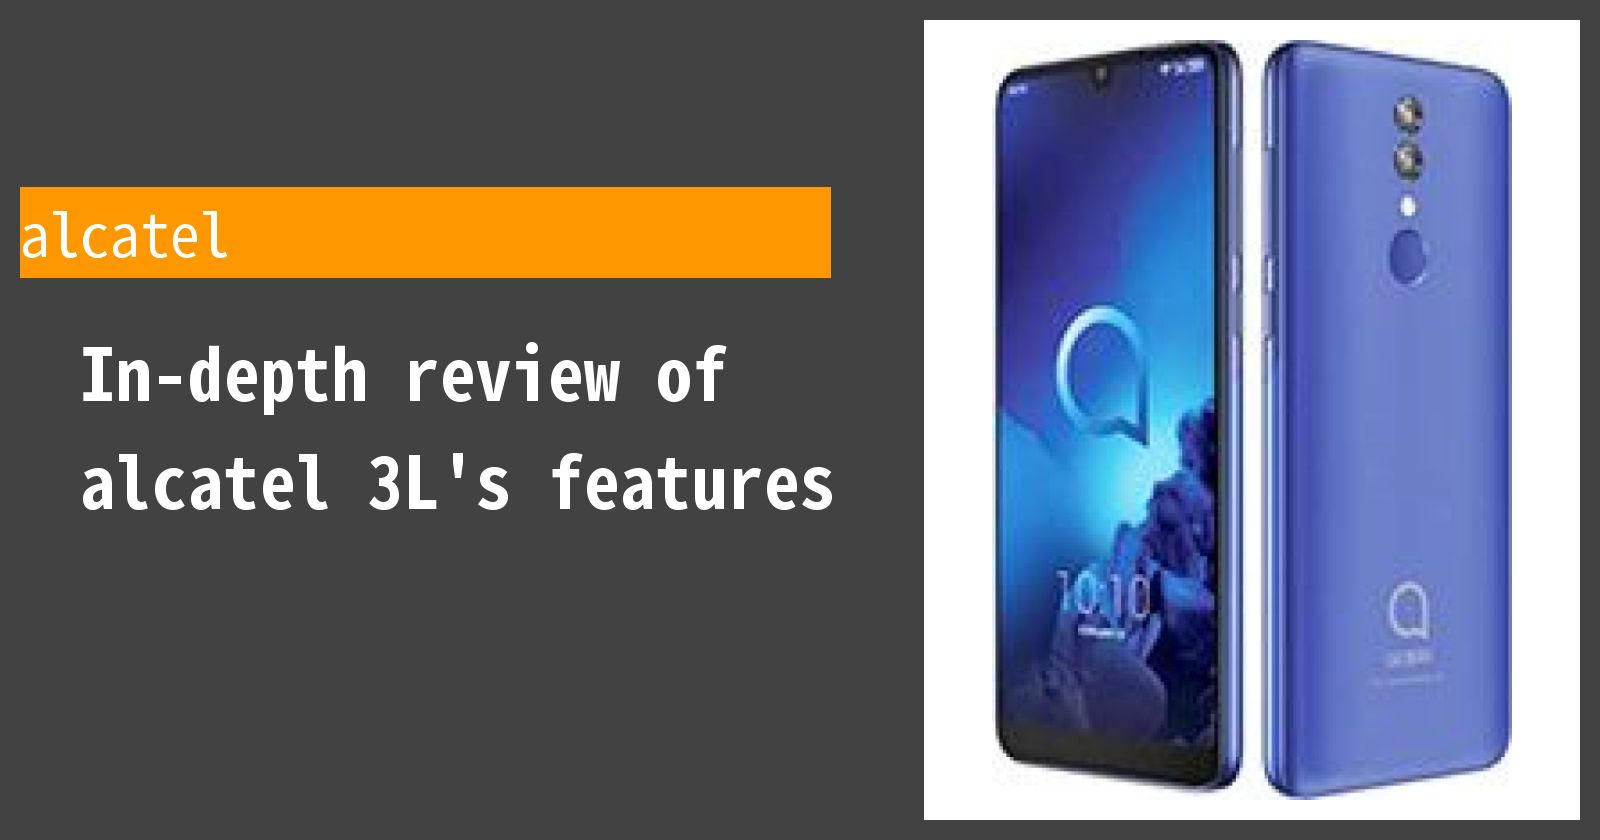 What are the advantages and disadvantages of alcatel 3L? A review of